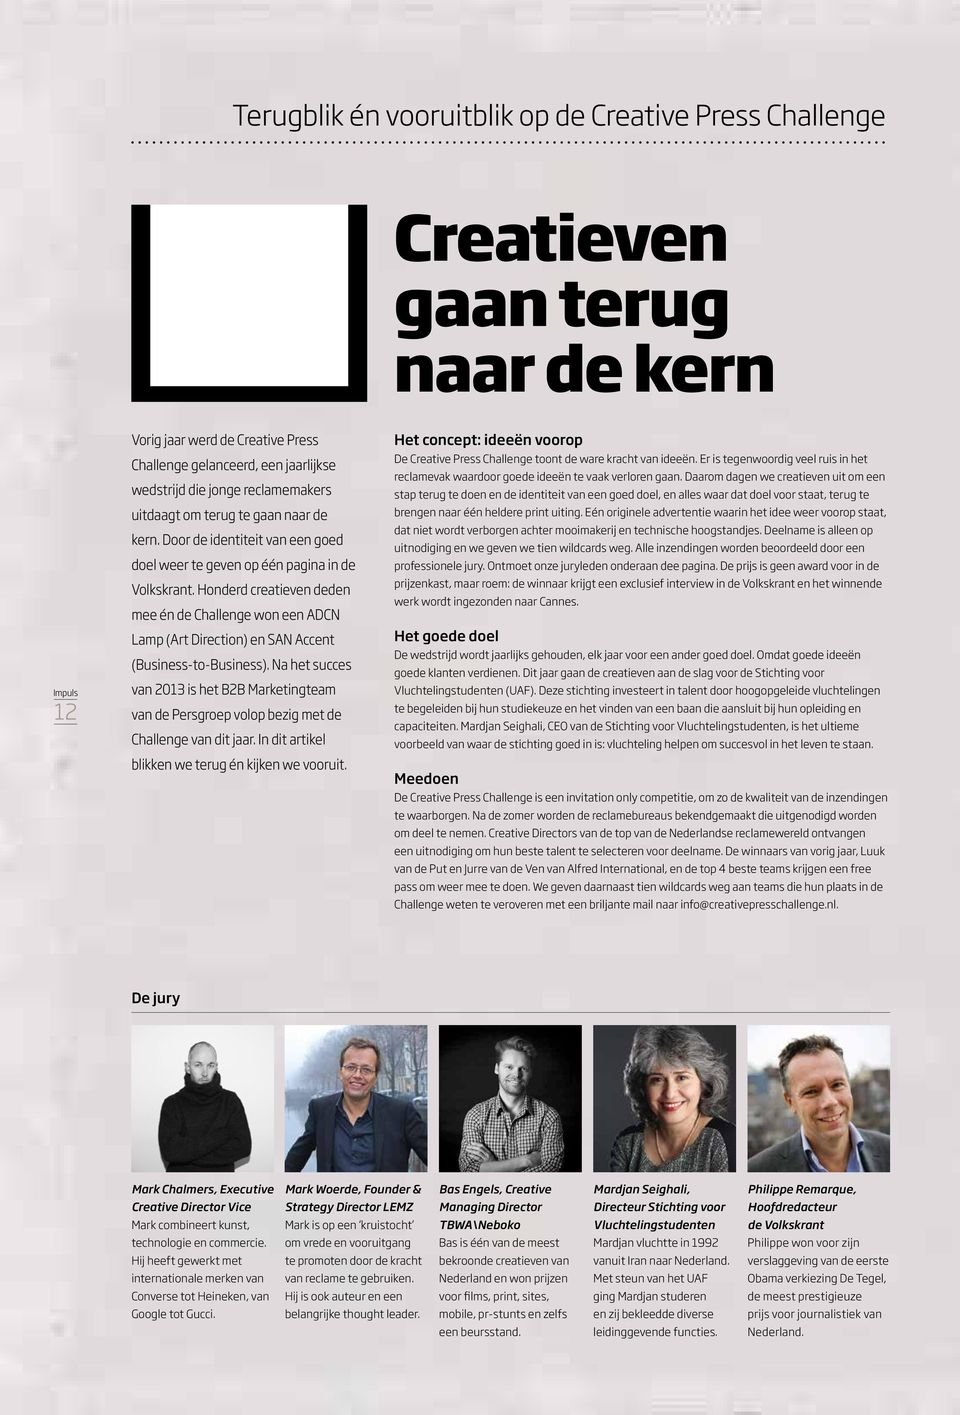 Honderd creatieven deden mee én de Challenge won een ADCN Lamp (Art Direction) en SAN Accent (Business-to-Business).